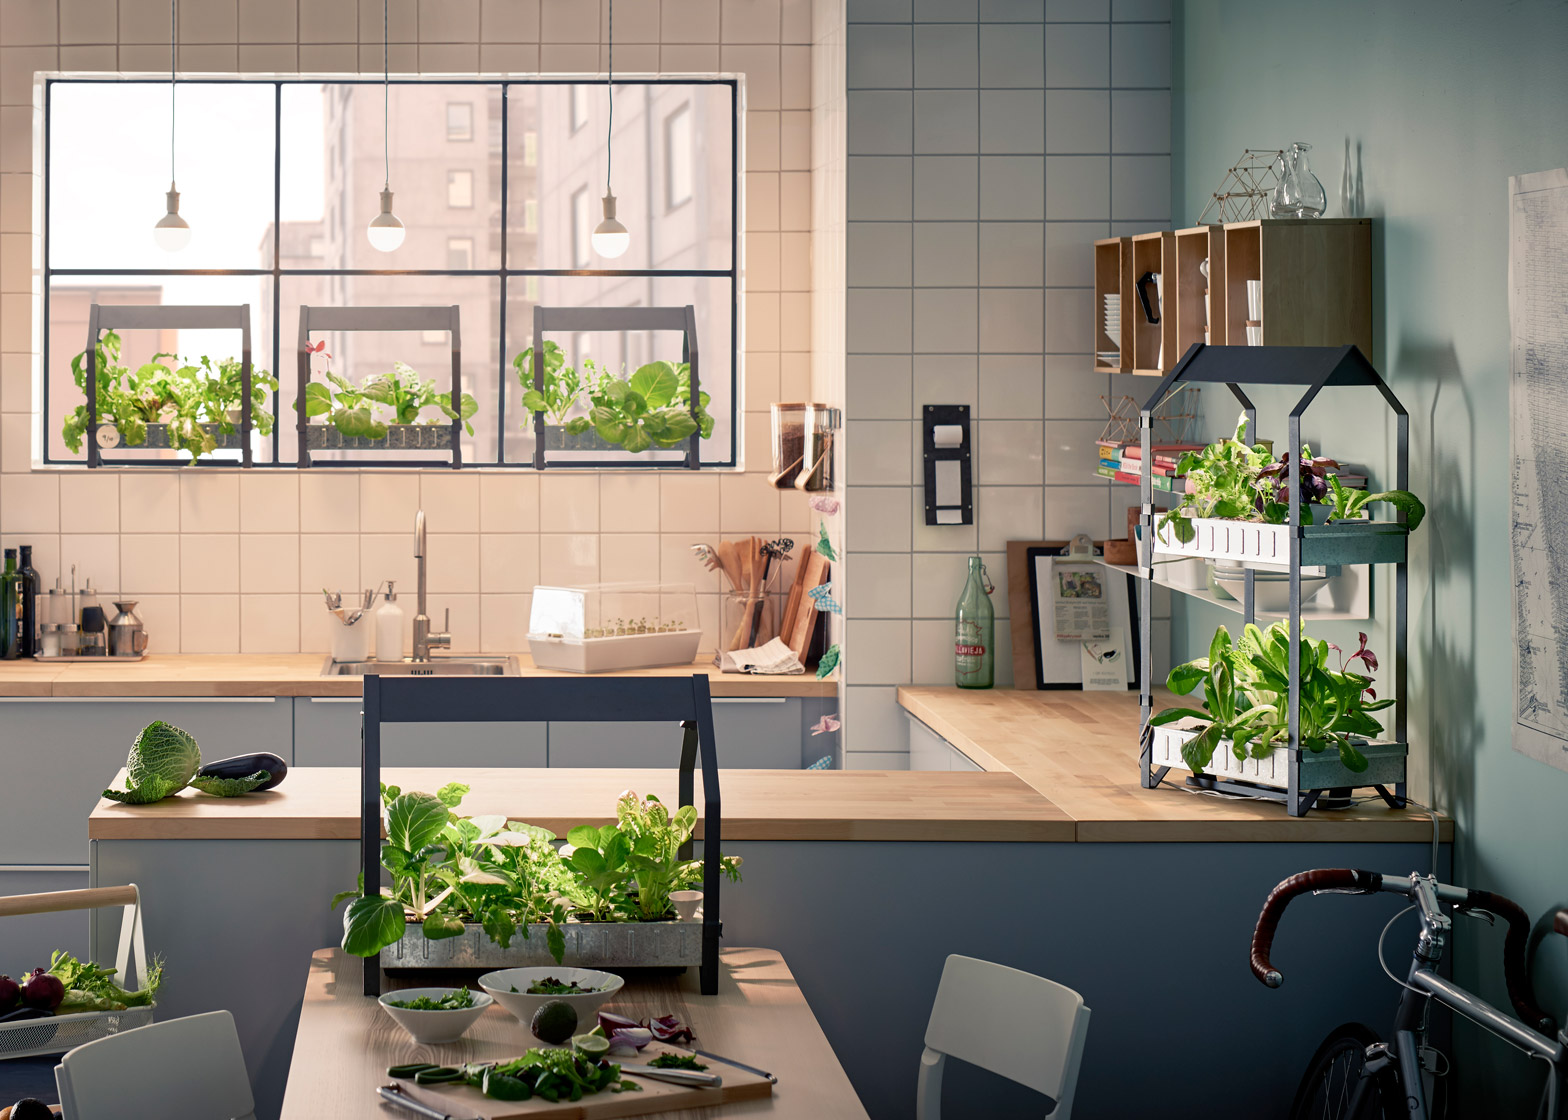 hydroponic-gardening-krydda-vaxer-series-kit-ikea-sustainable-homeware-design-interior-indoor_dezeen_1568_10